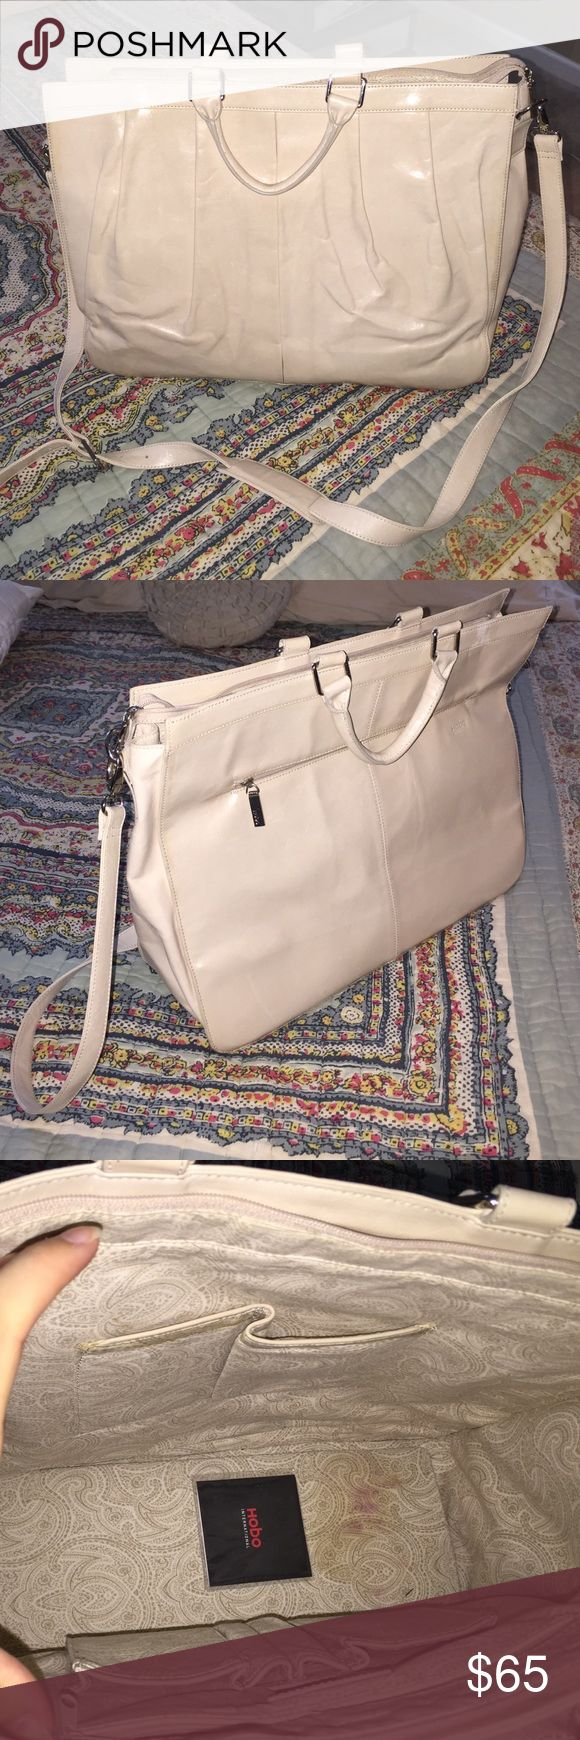 Hobo international cream large bag/laptop purse Used but good condition one stain shown in photo. Cream color beautiful bag! Great for carrying a computer or papers for work. Removable strap included. HOBO Bags Laptop Bags